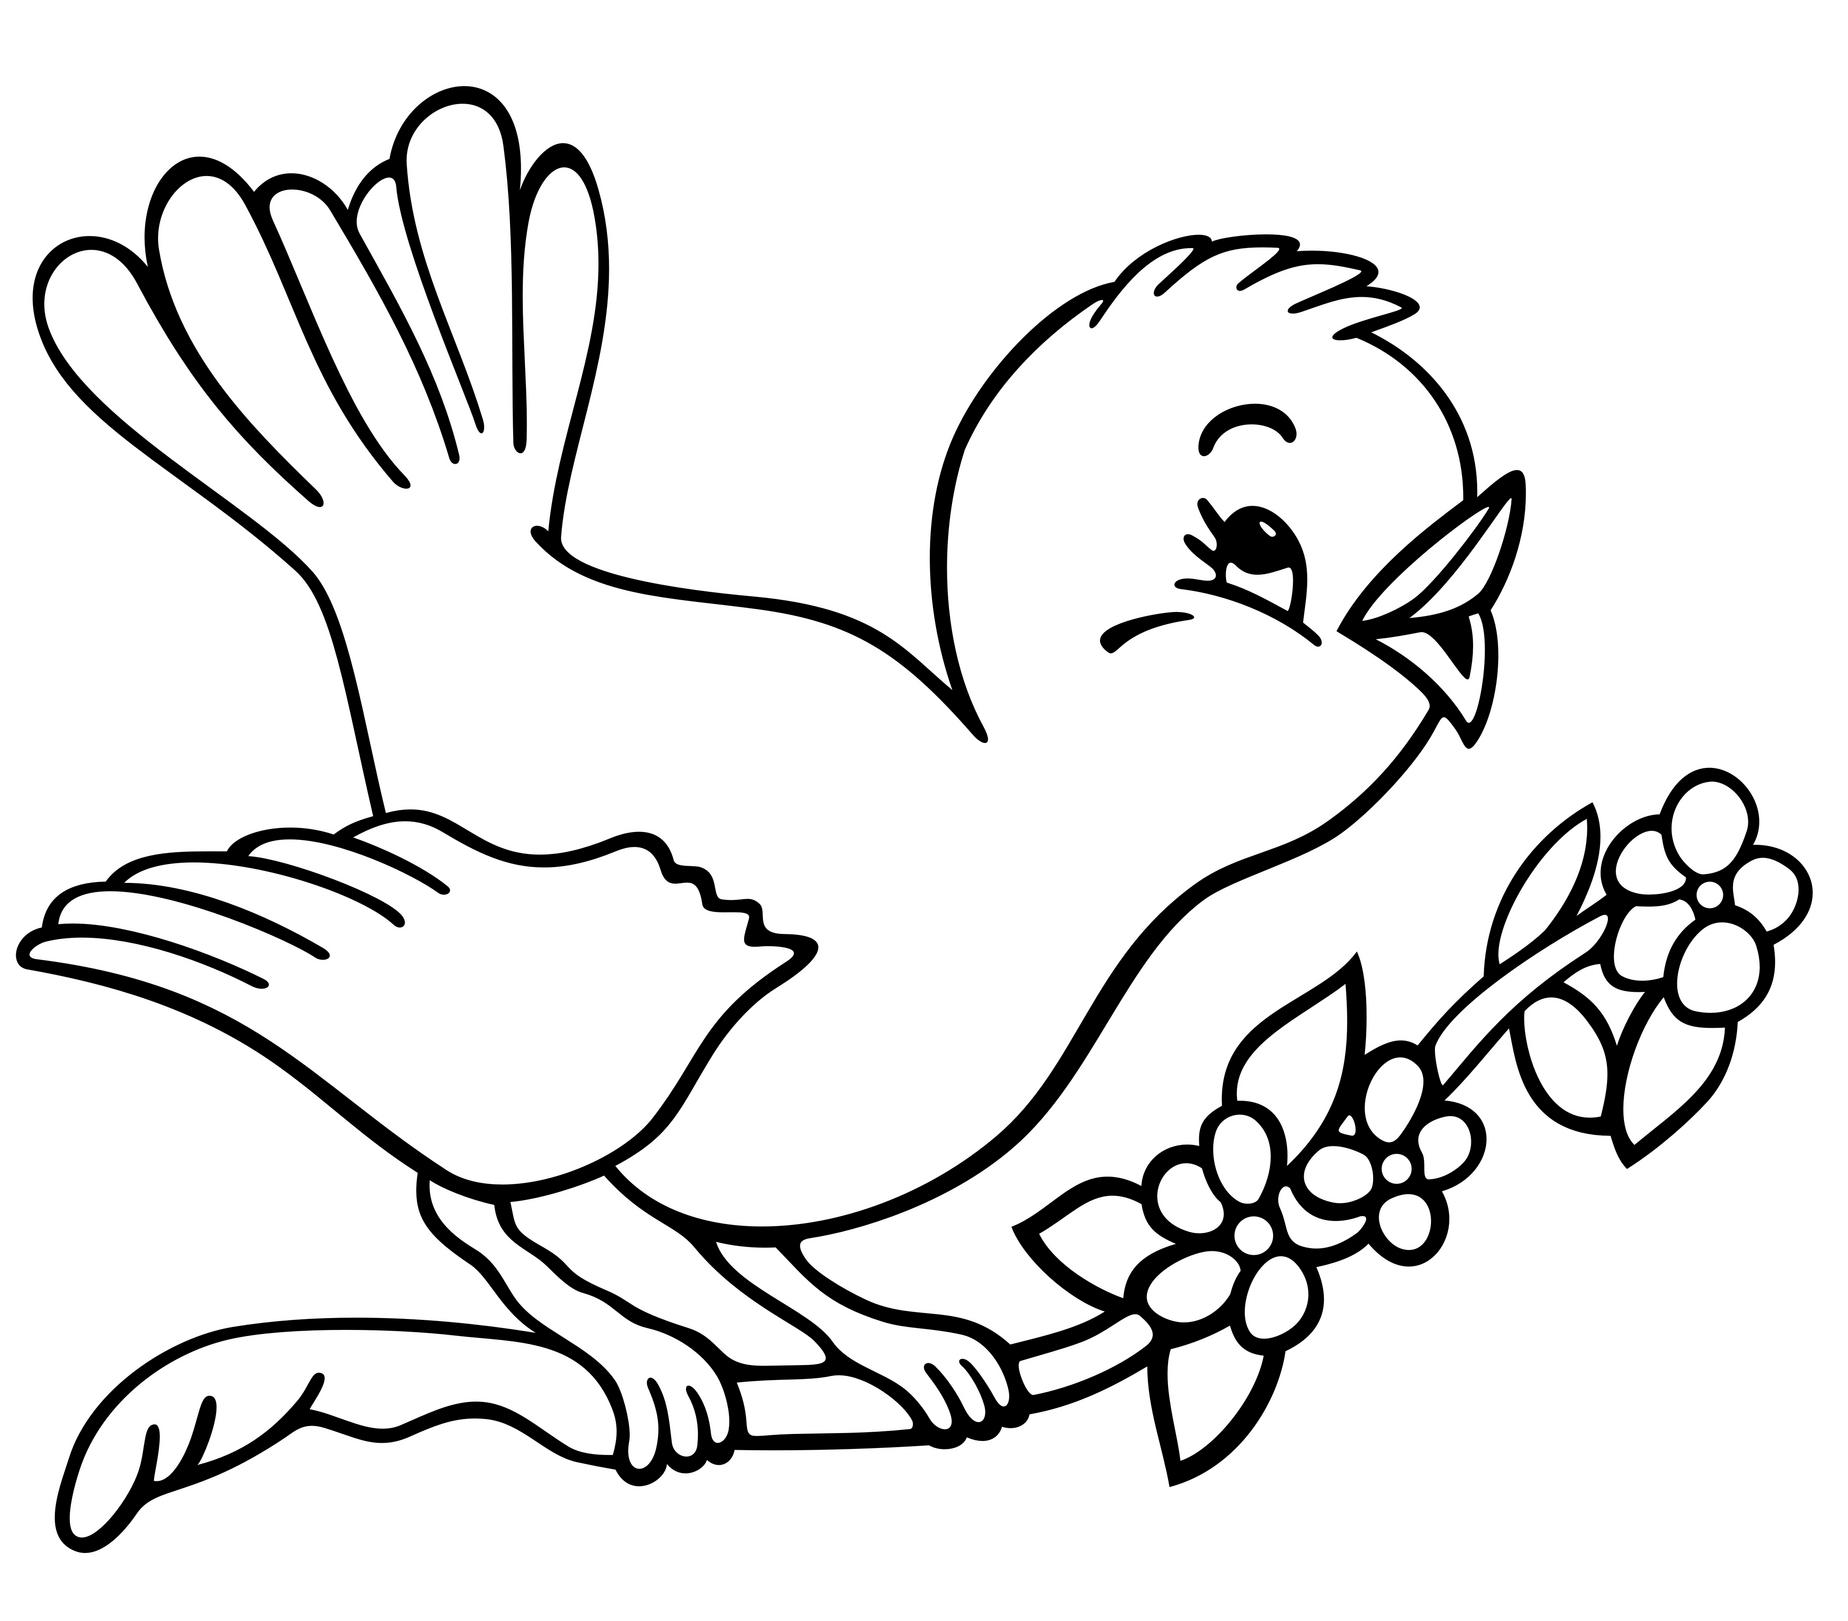 Cuckoo bird coloring pages for Bird coloring pages to print